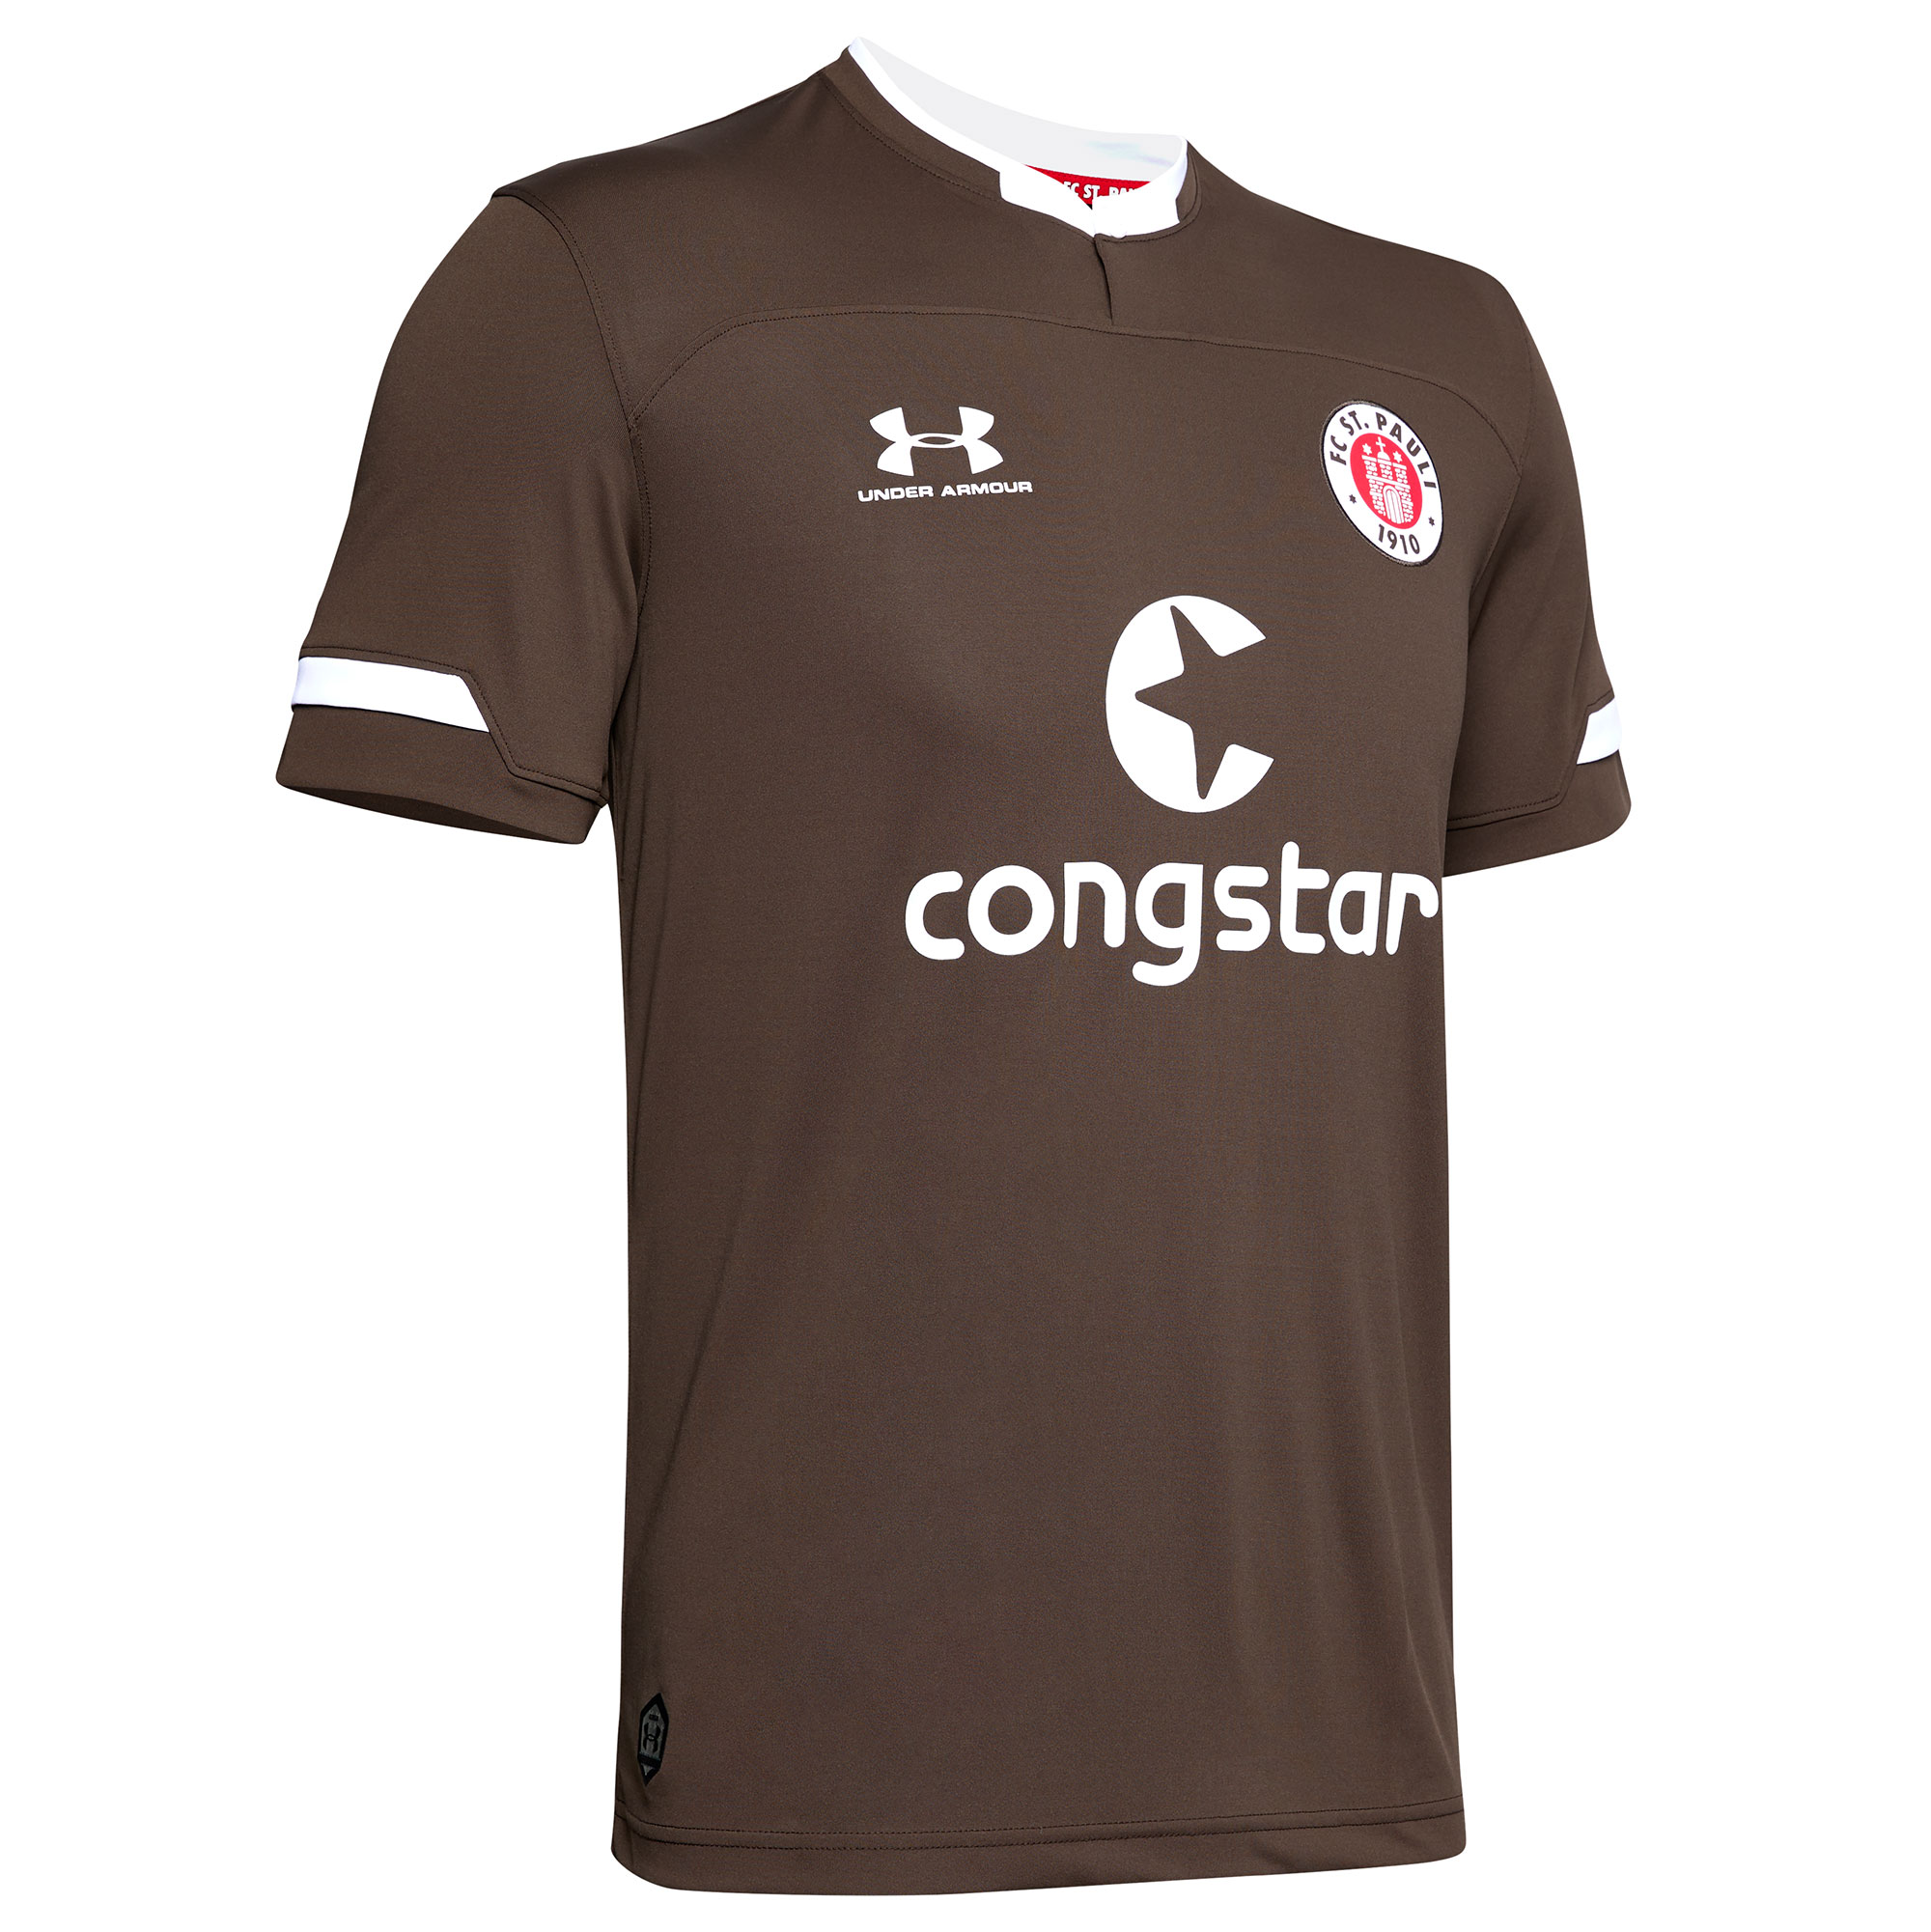 St Pauli Home shirt